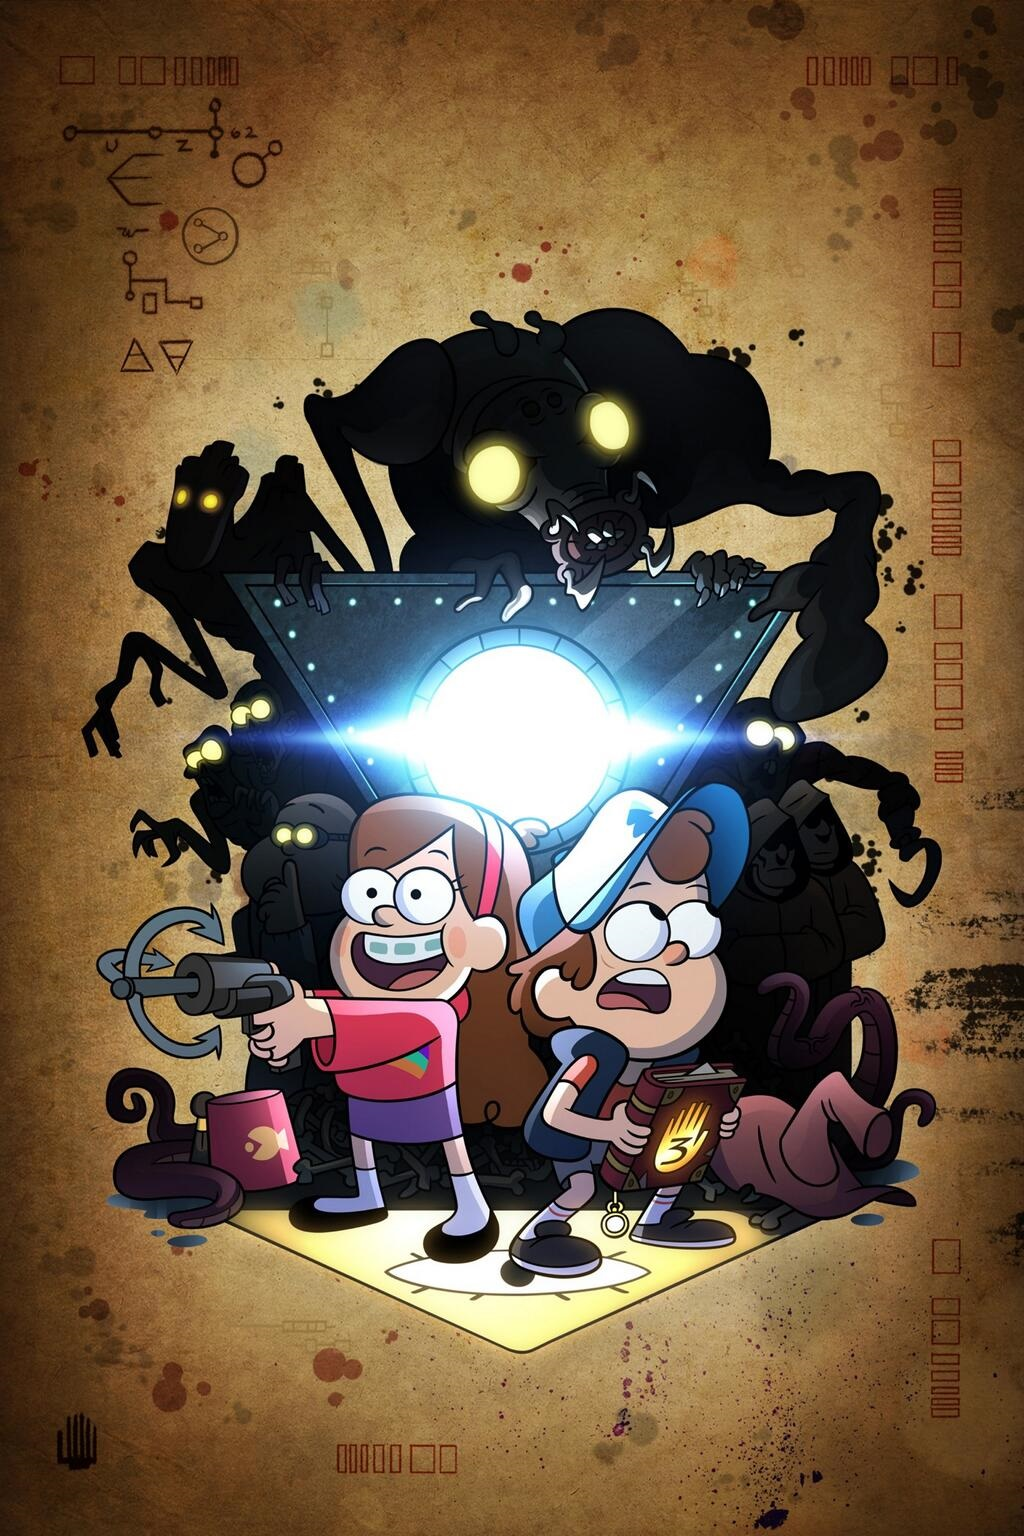 Gravity Falls Wallpaper Full Hd Viajar Leyendo Cr 237 Ticas Express Gravity Falls Es Una